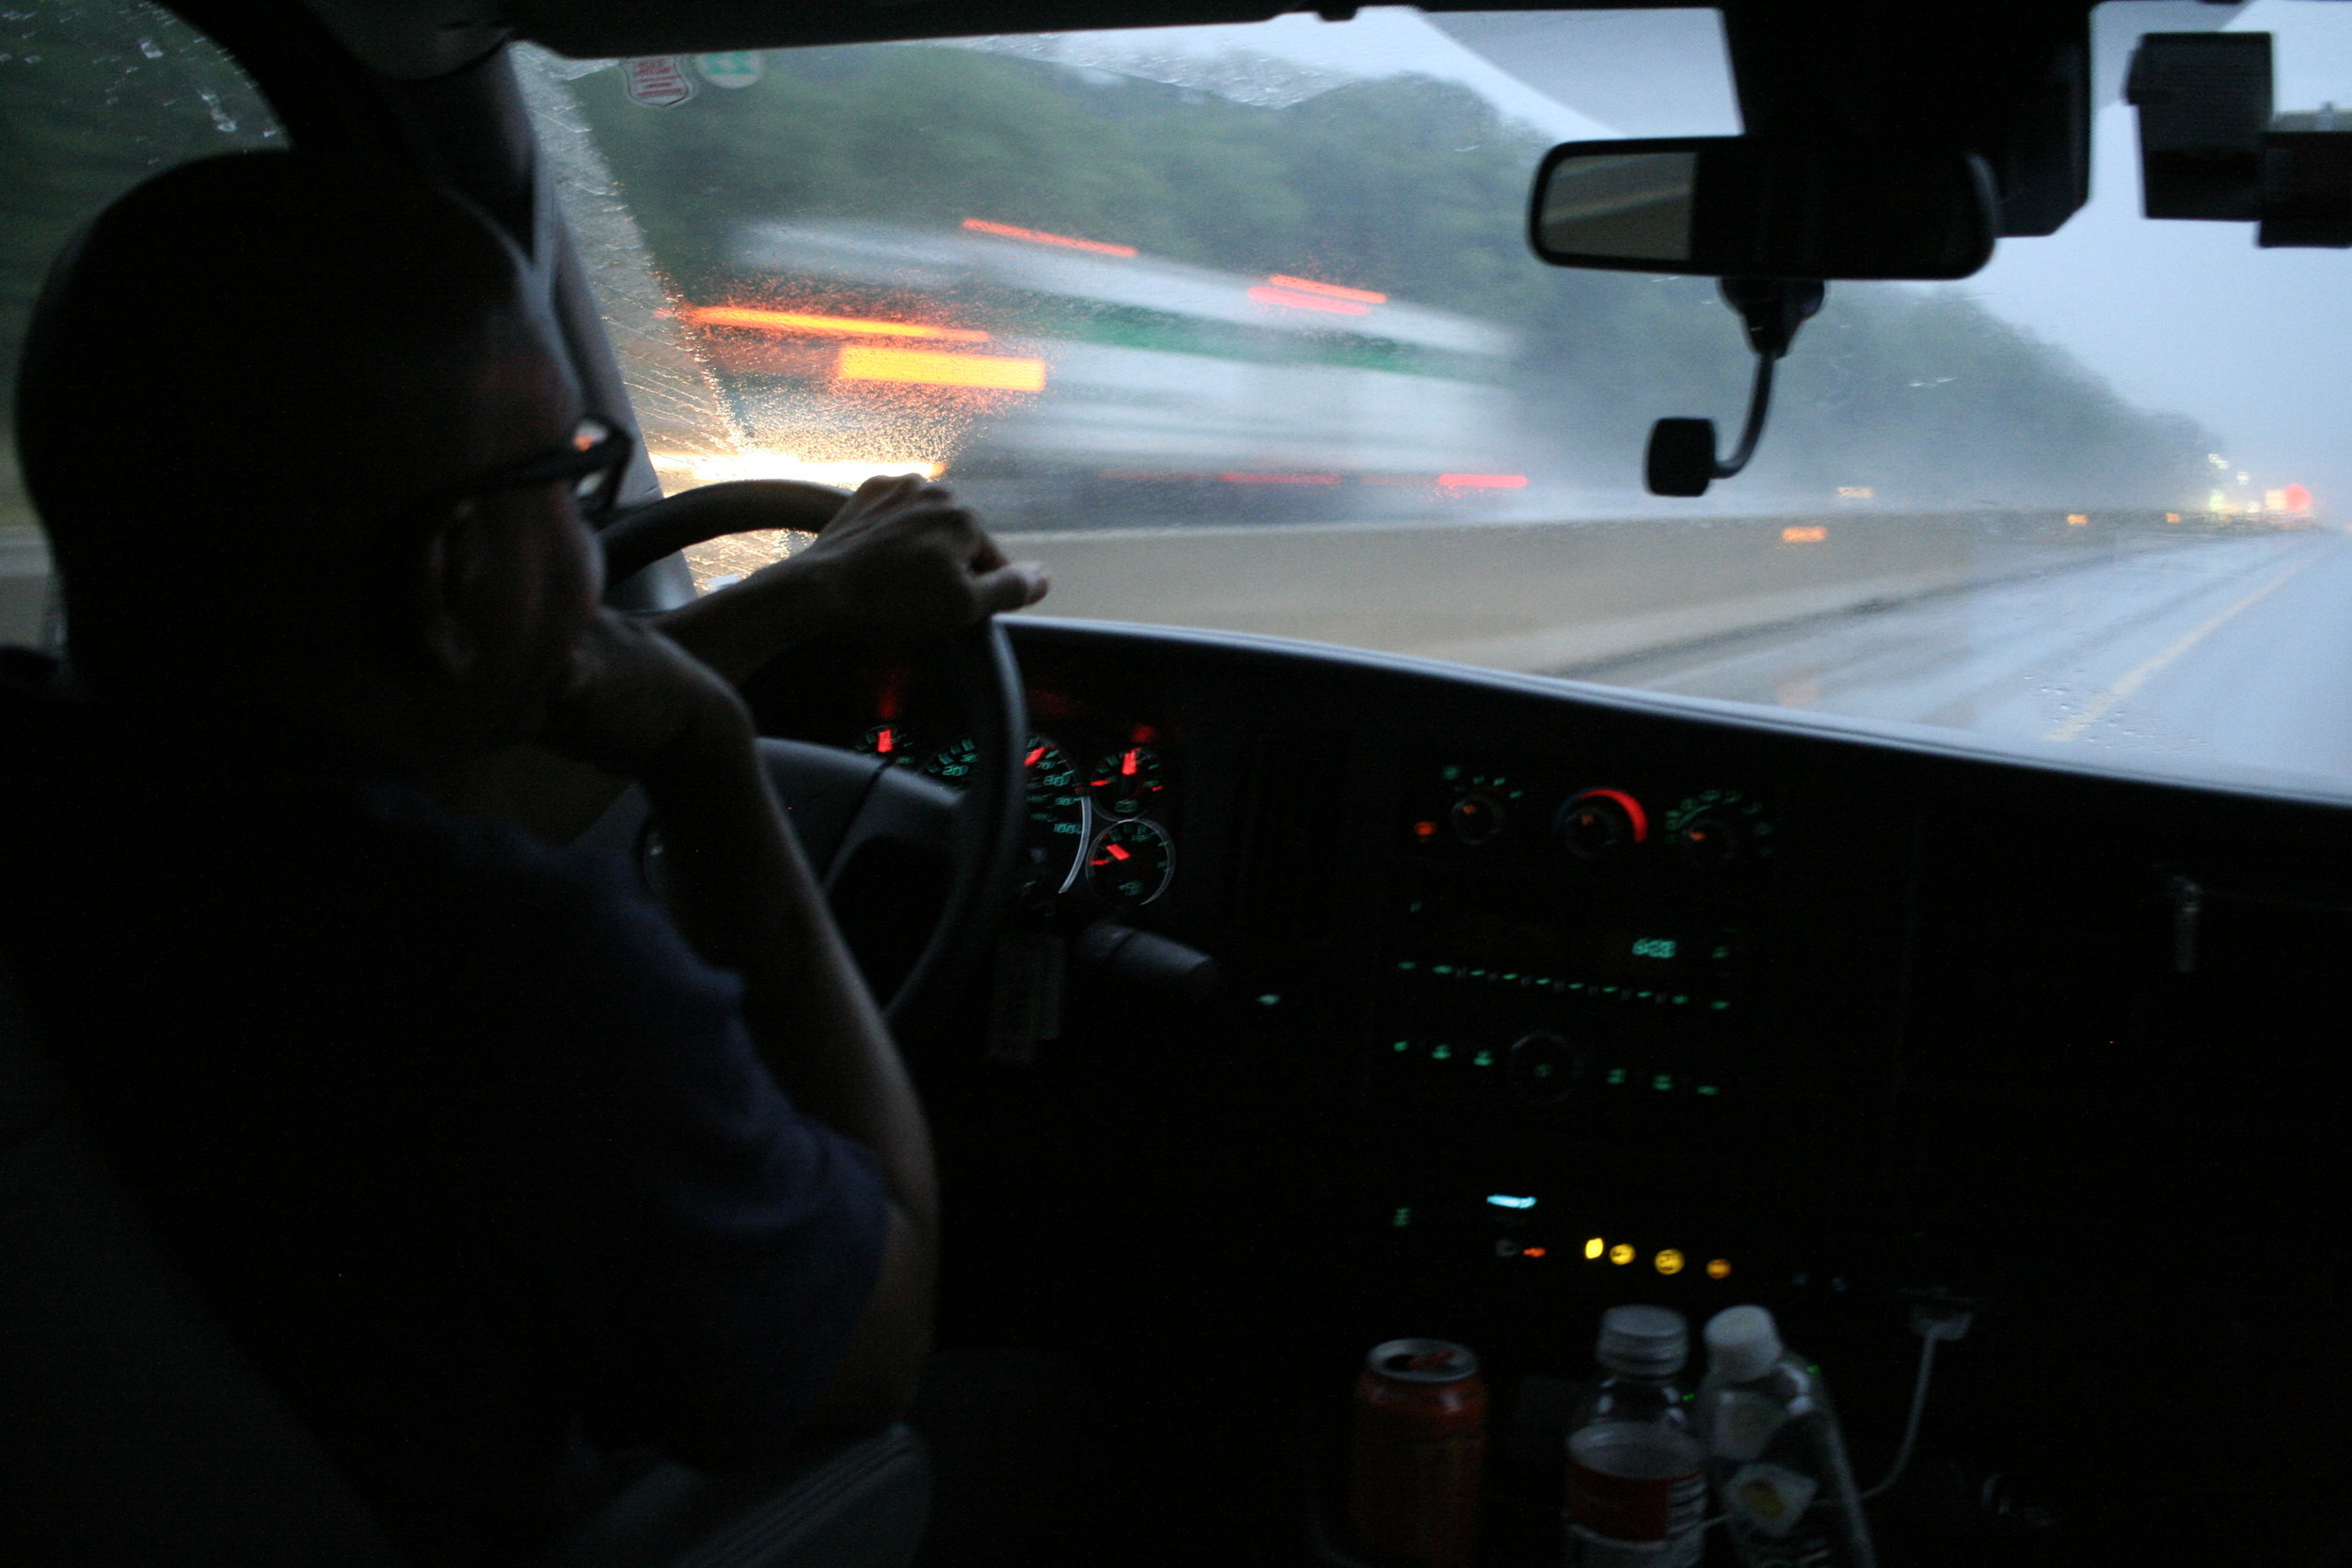 Rod took his turn driving during the worst of the rain.